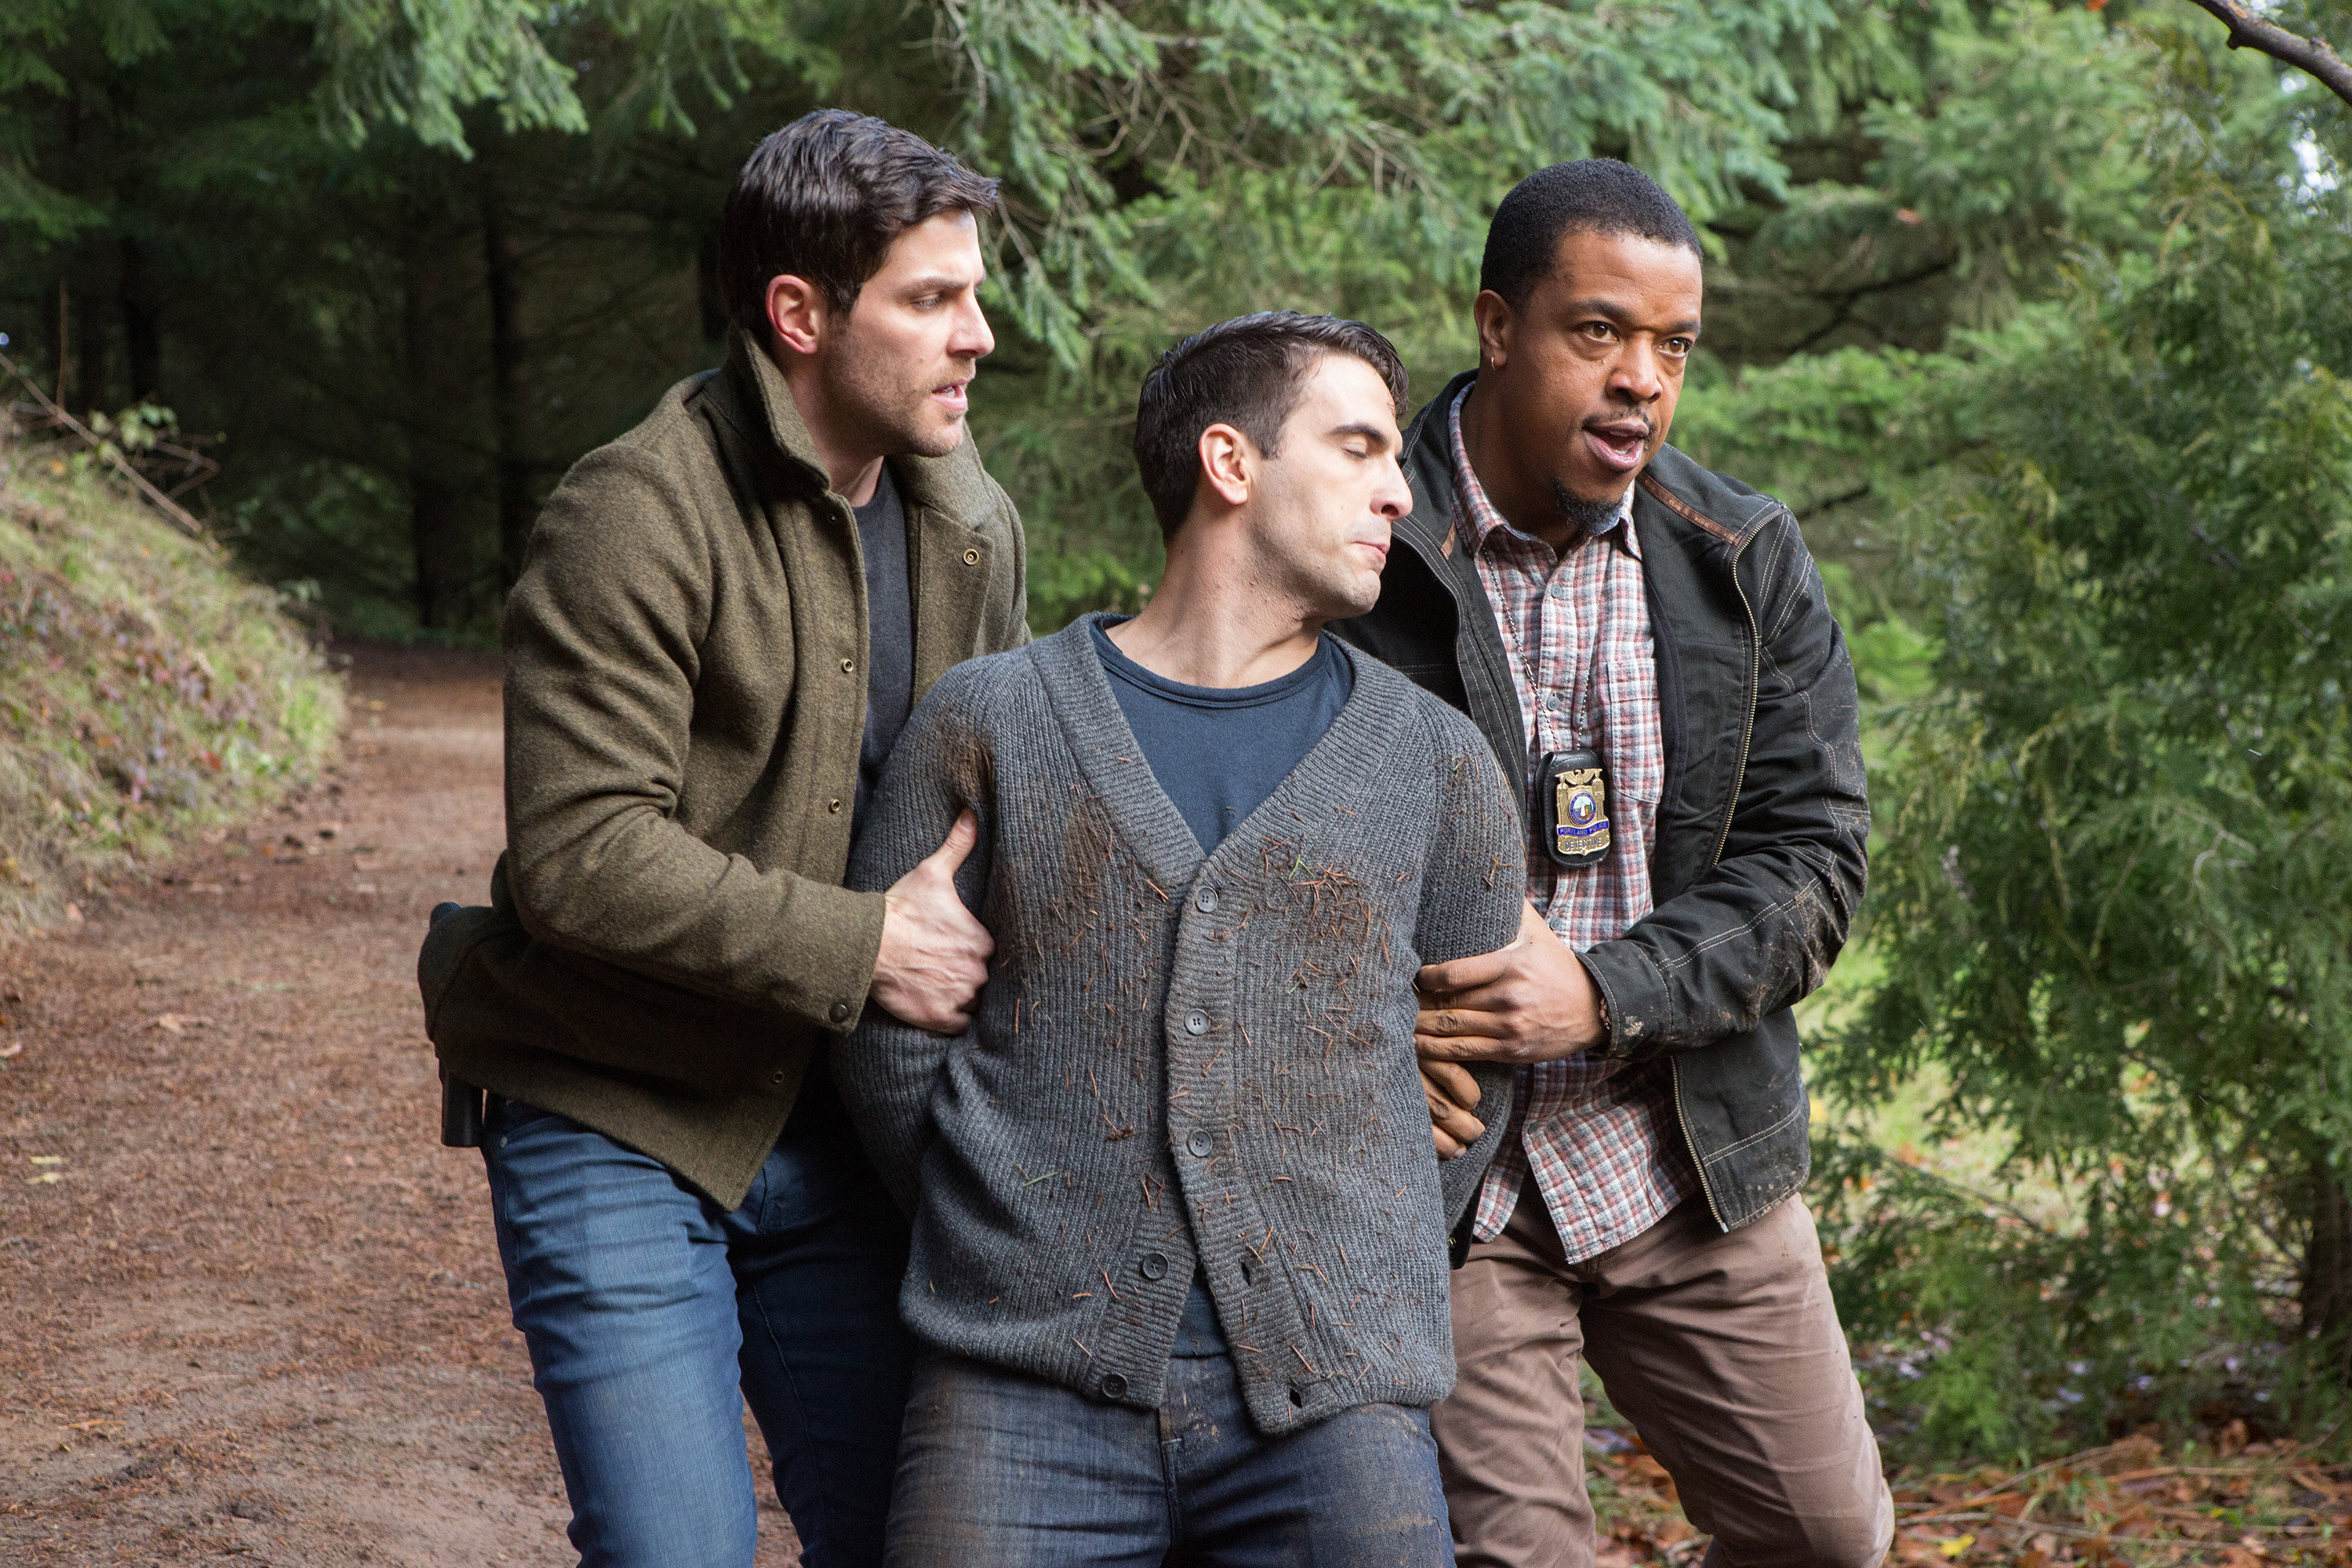 GRIMM, l-r: David Giuntoli, Russell Hornsby in 'Lycanthropia' (Season 5, Episode 14, aired March 25, 2016)